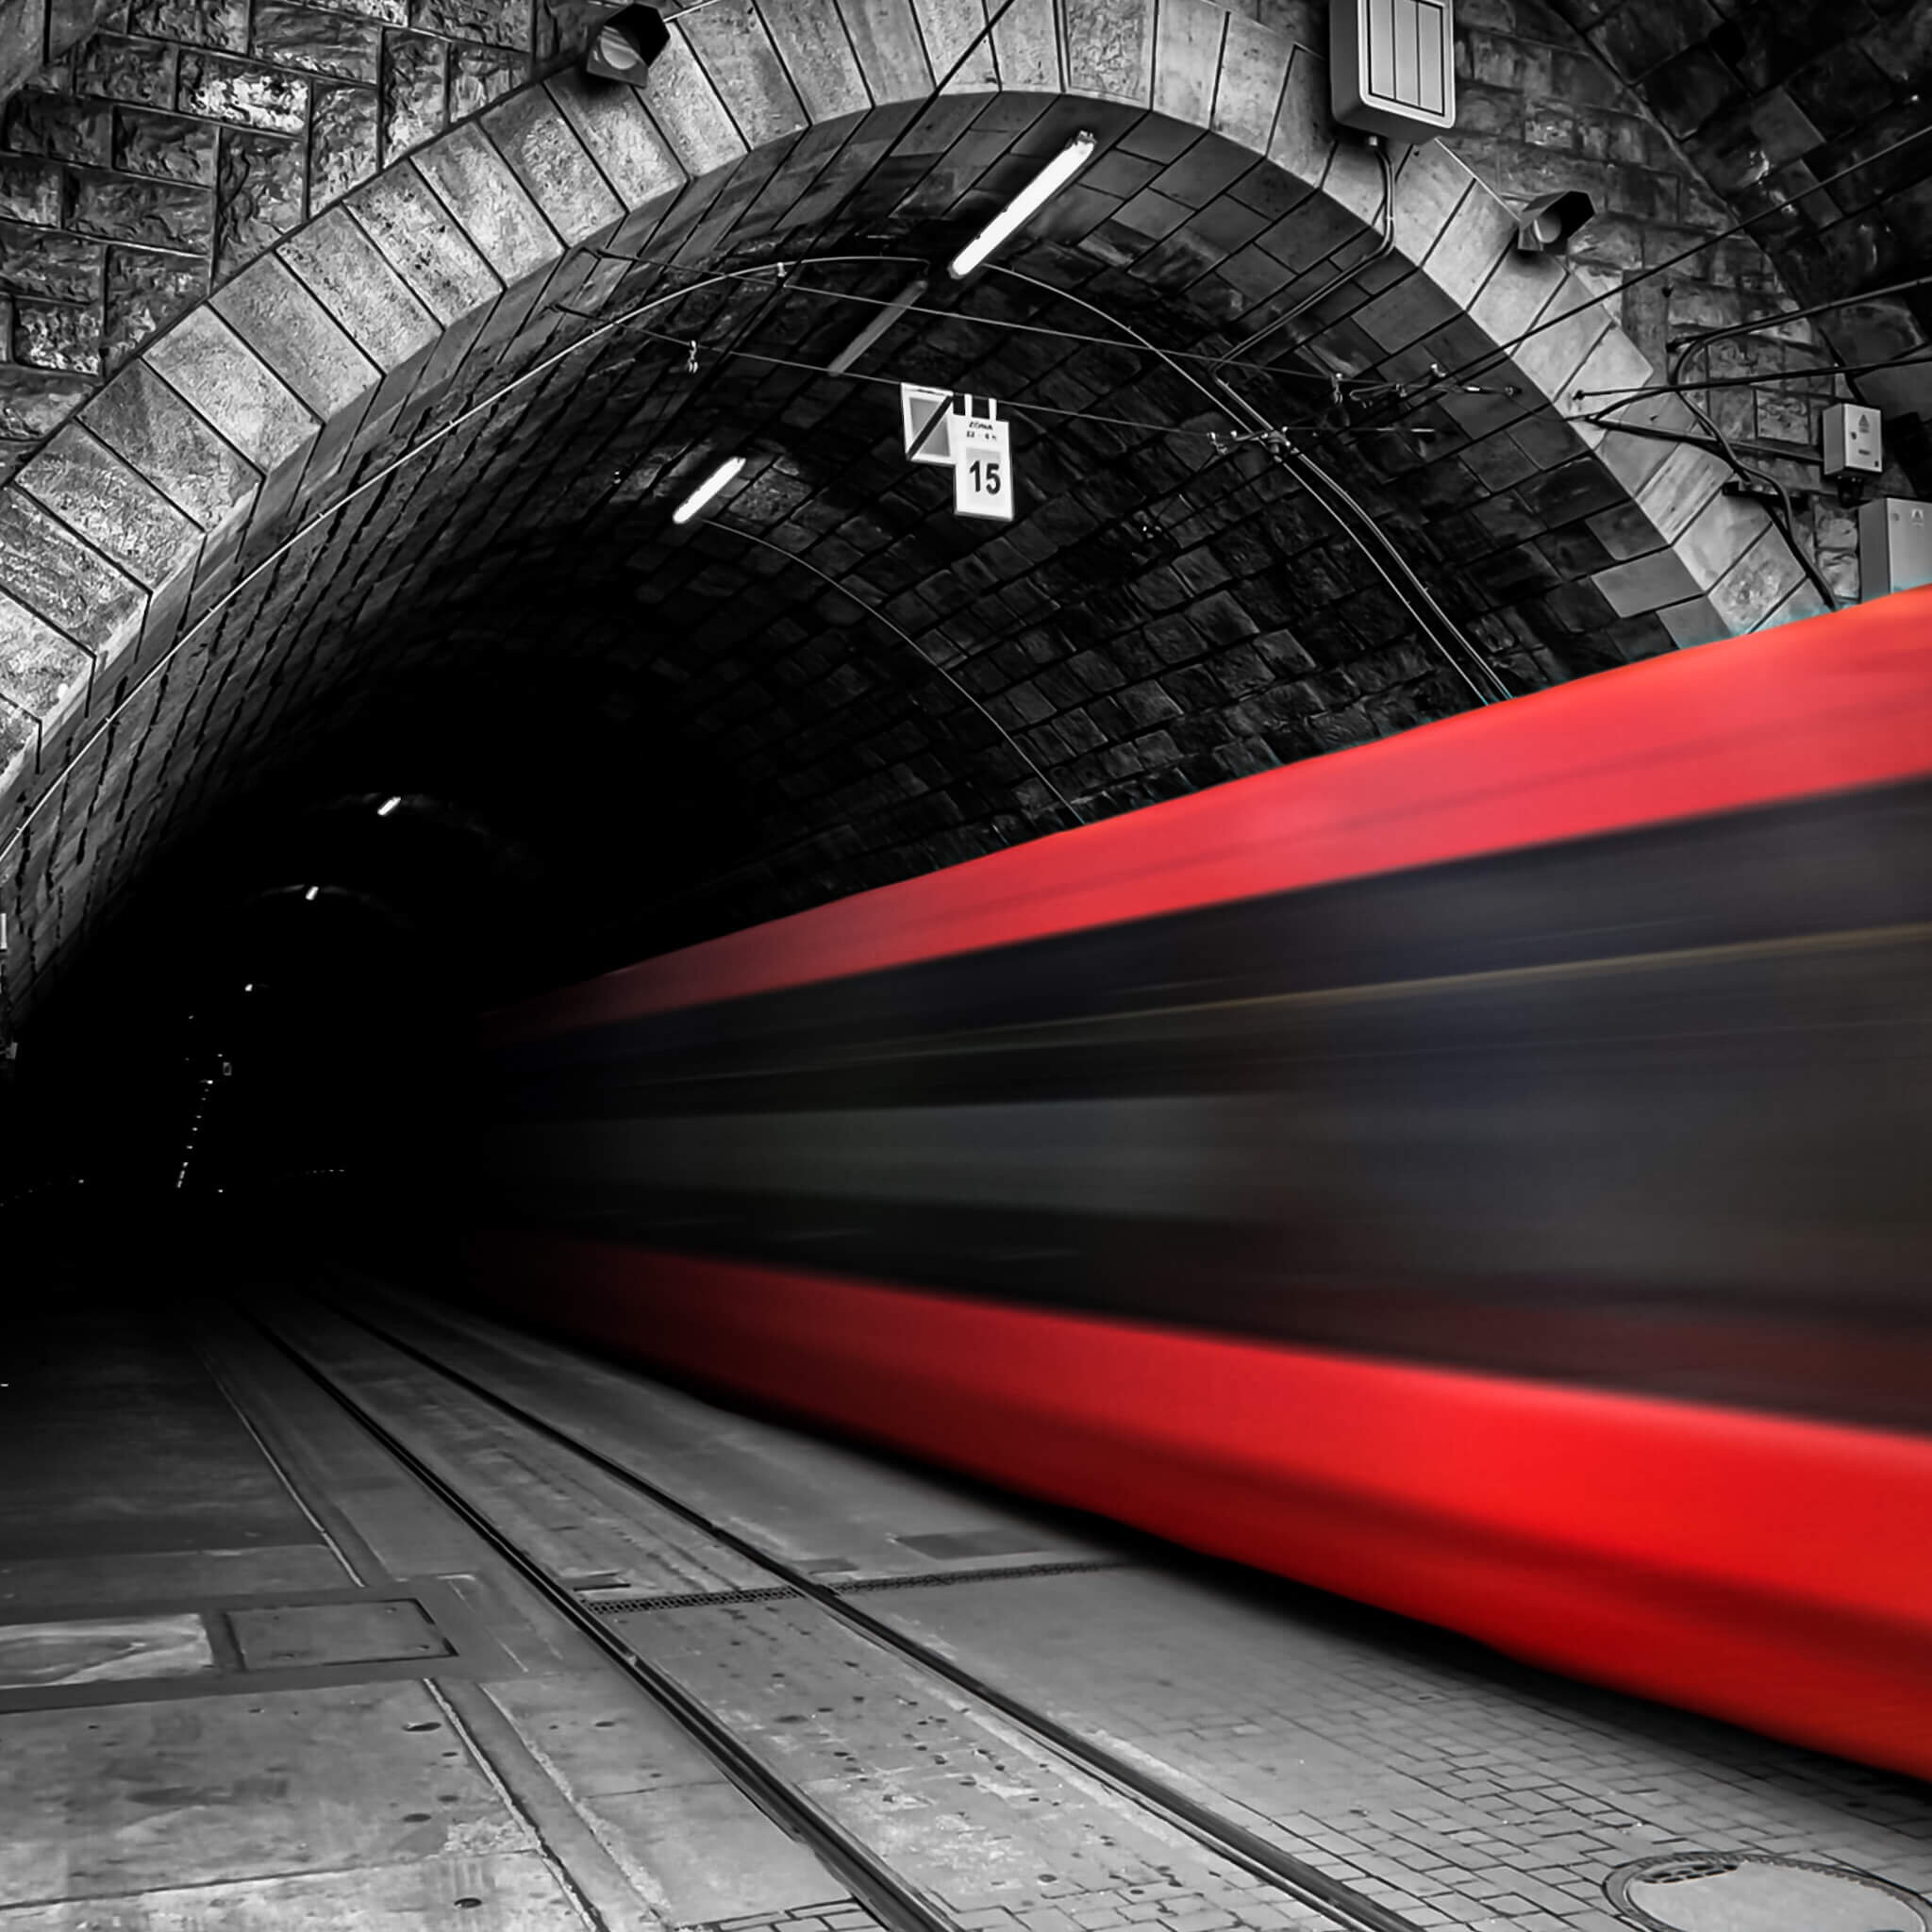 Long Exposure of a tram entering the tunnel